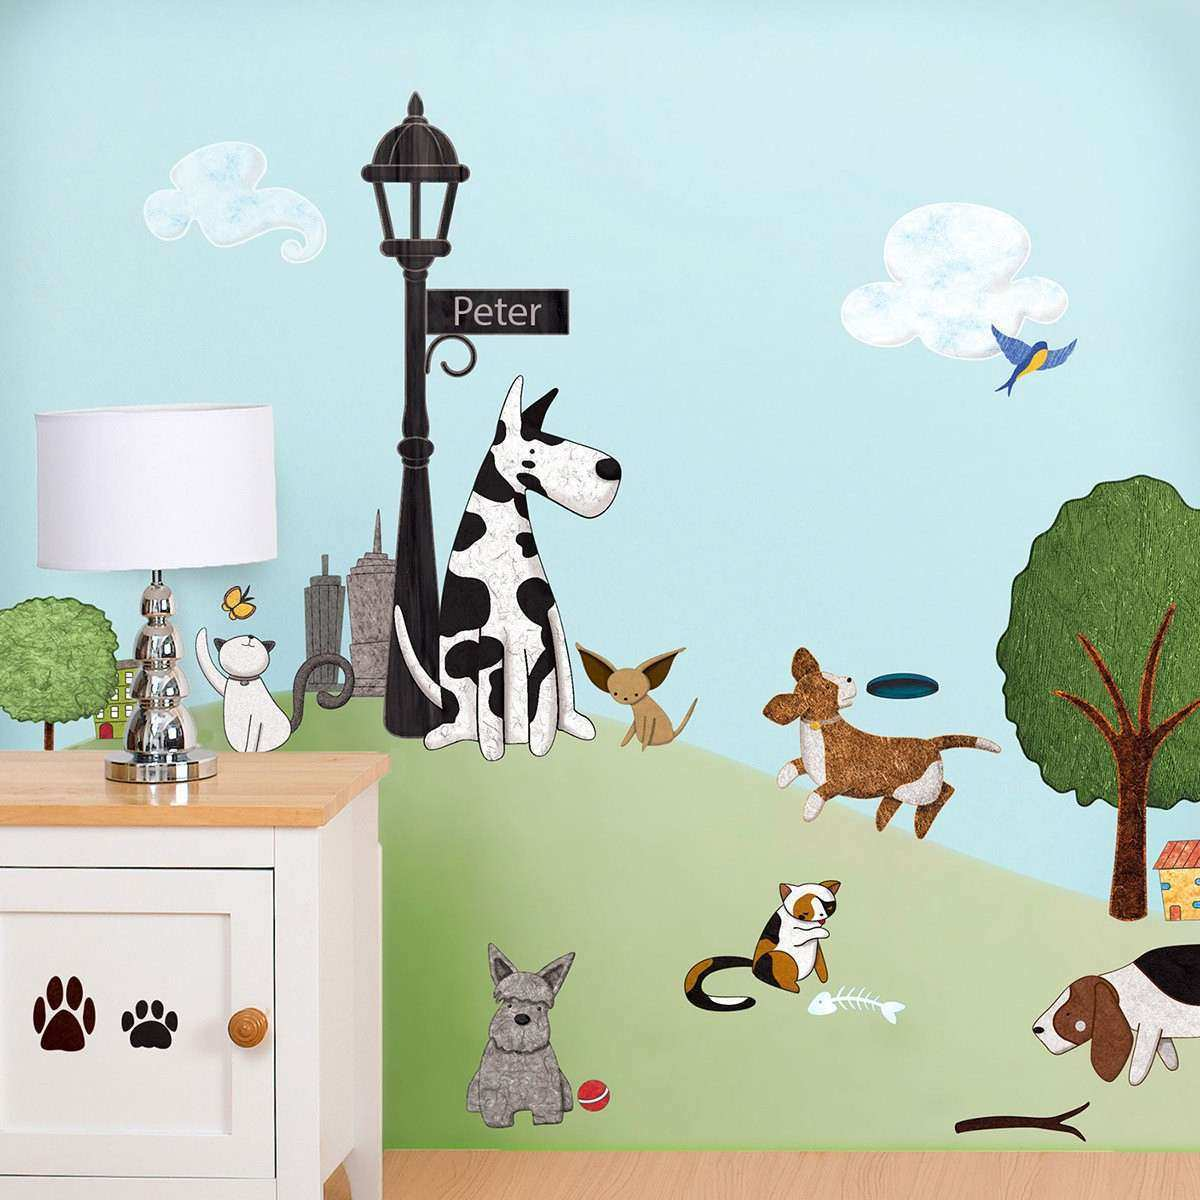 Cat Wall Decor Inspirational Cat And Dog Wall Decals Stickers For Nursery  And Kids Room